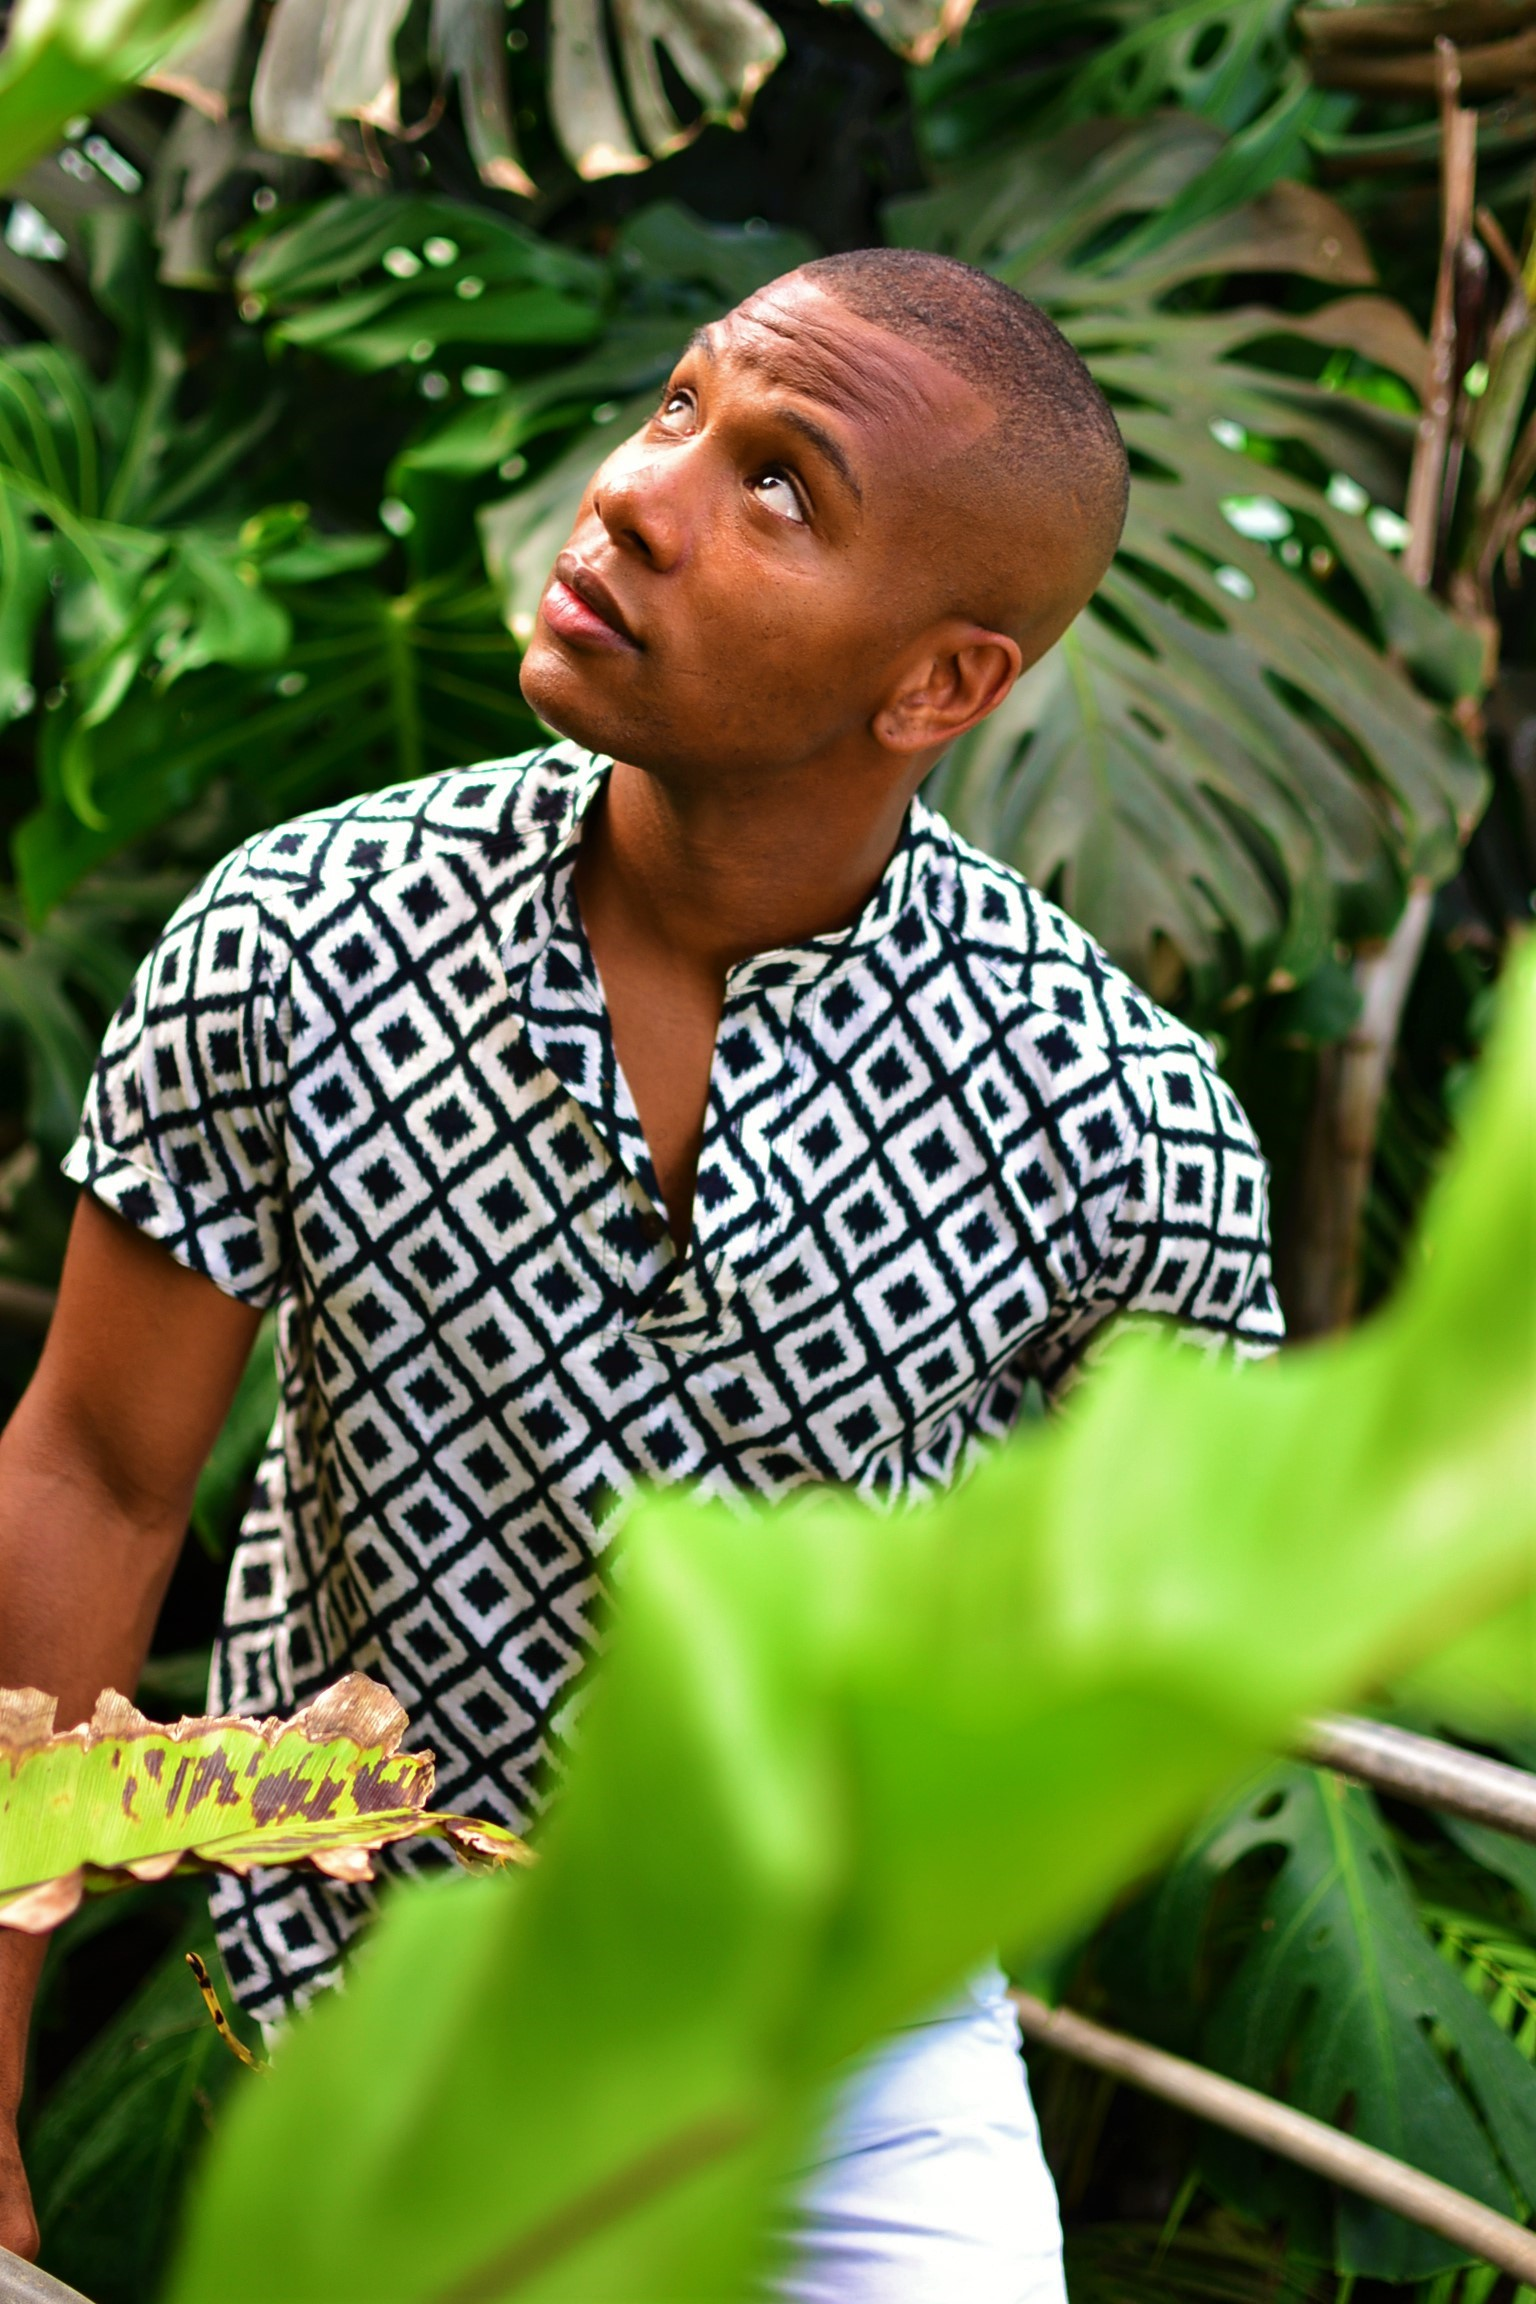 Sabir M. Peele in Hugh & Crye Band Collar Popover Shirt on Men's Style Pro